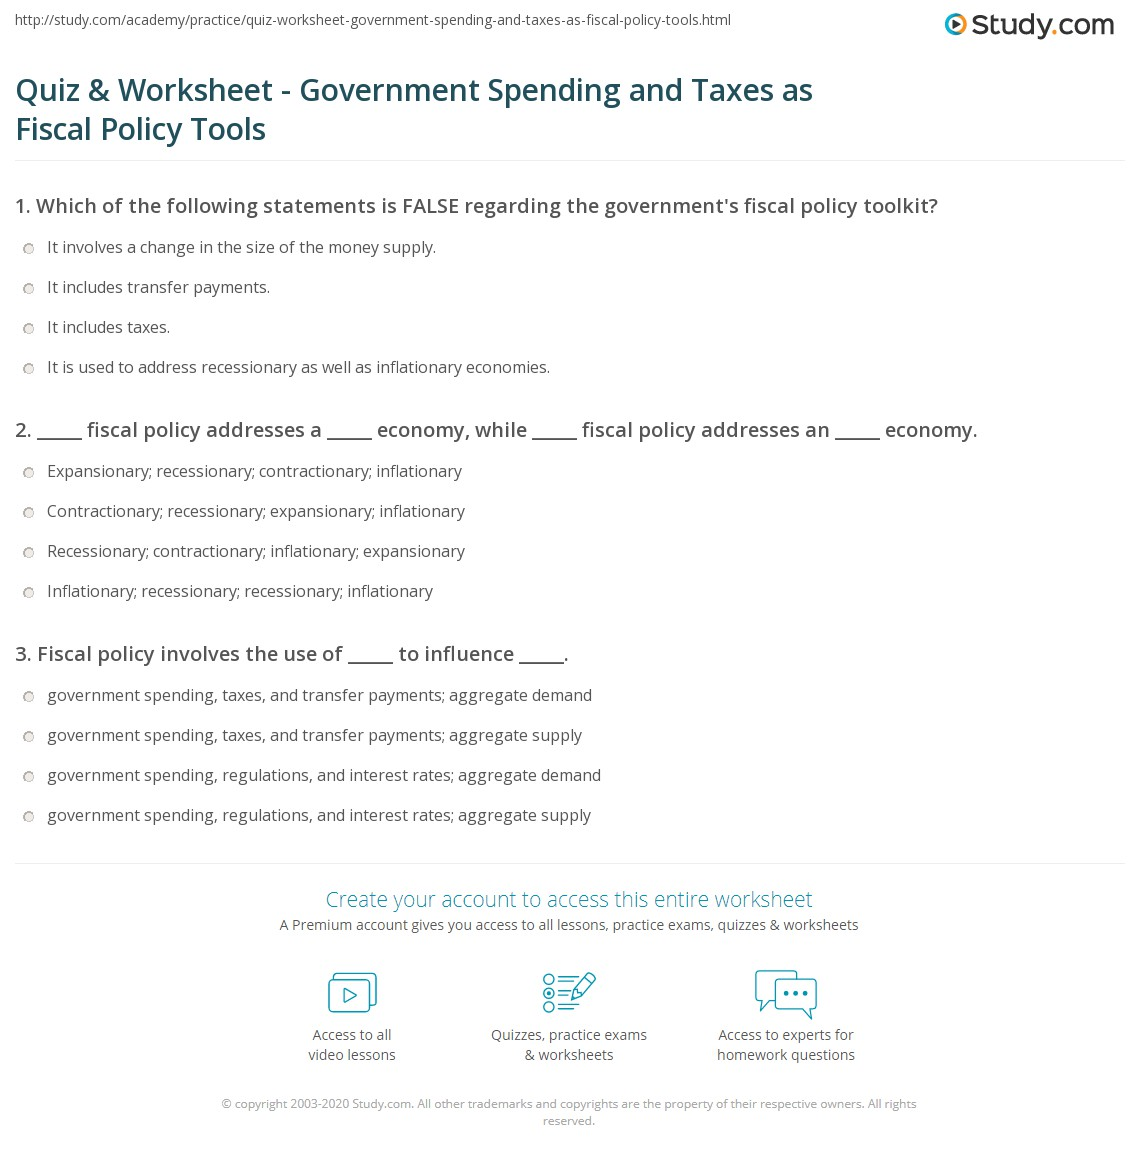 quiz worksheet government spending and taxes as fiscal policy tools. Black Bedroom Furniture Sets. Home Design Ideas